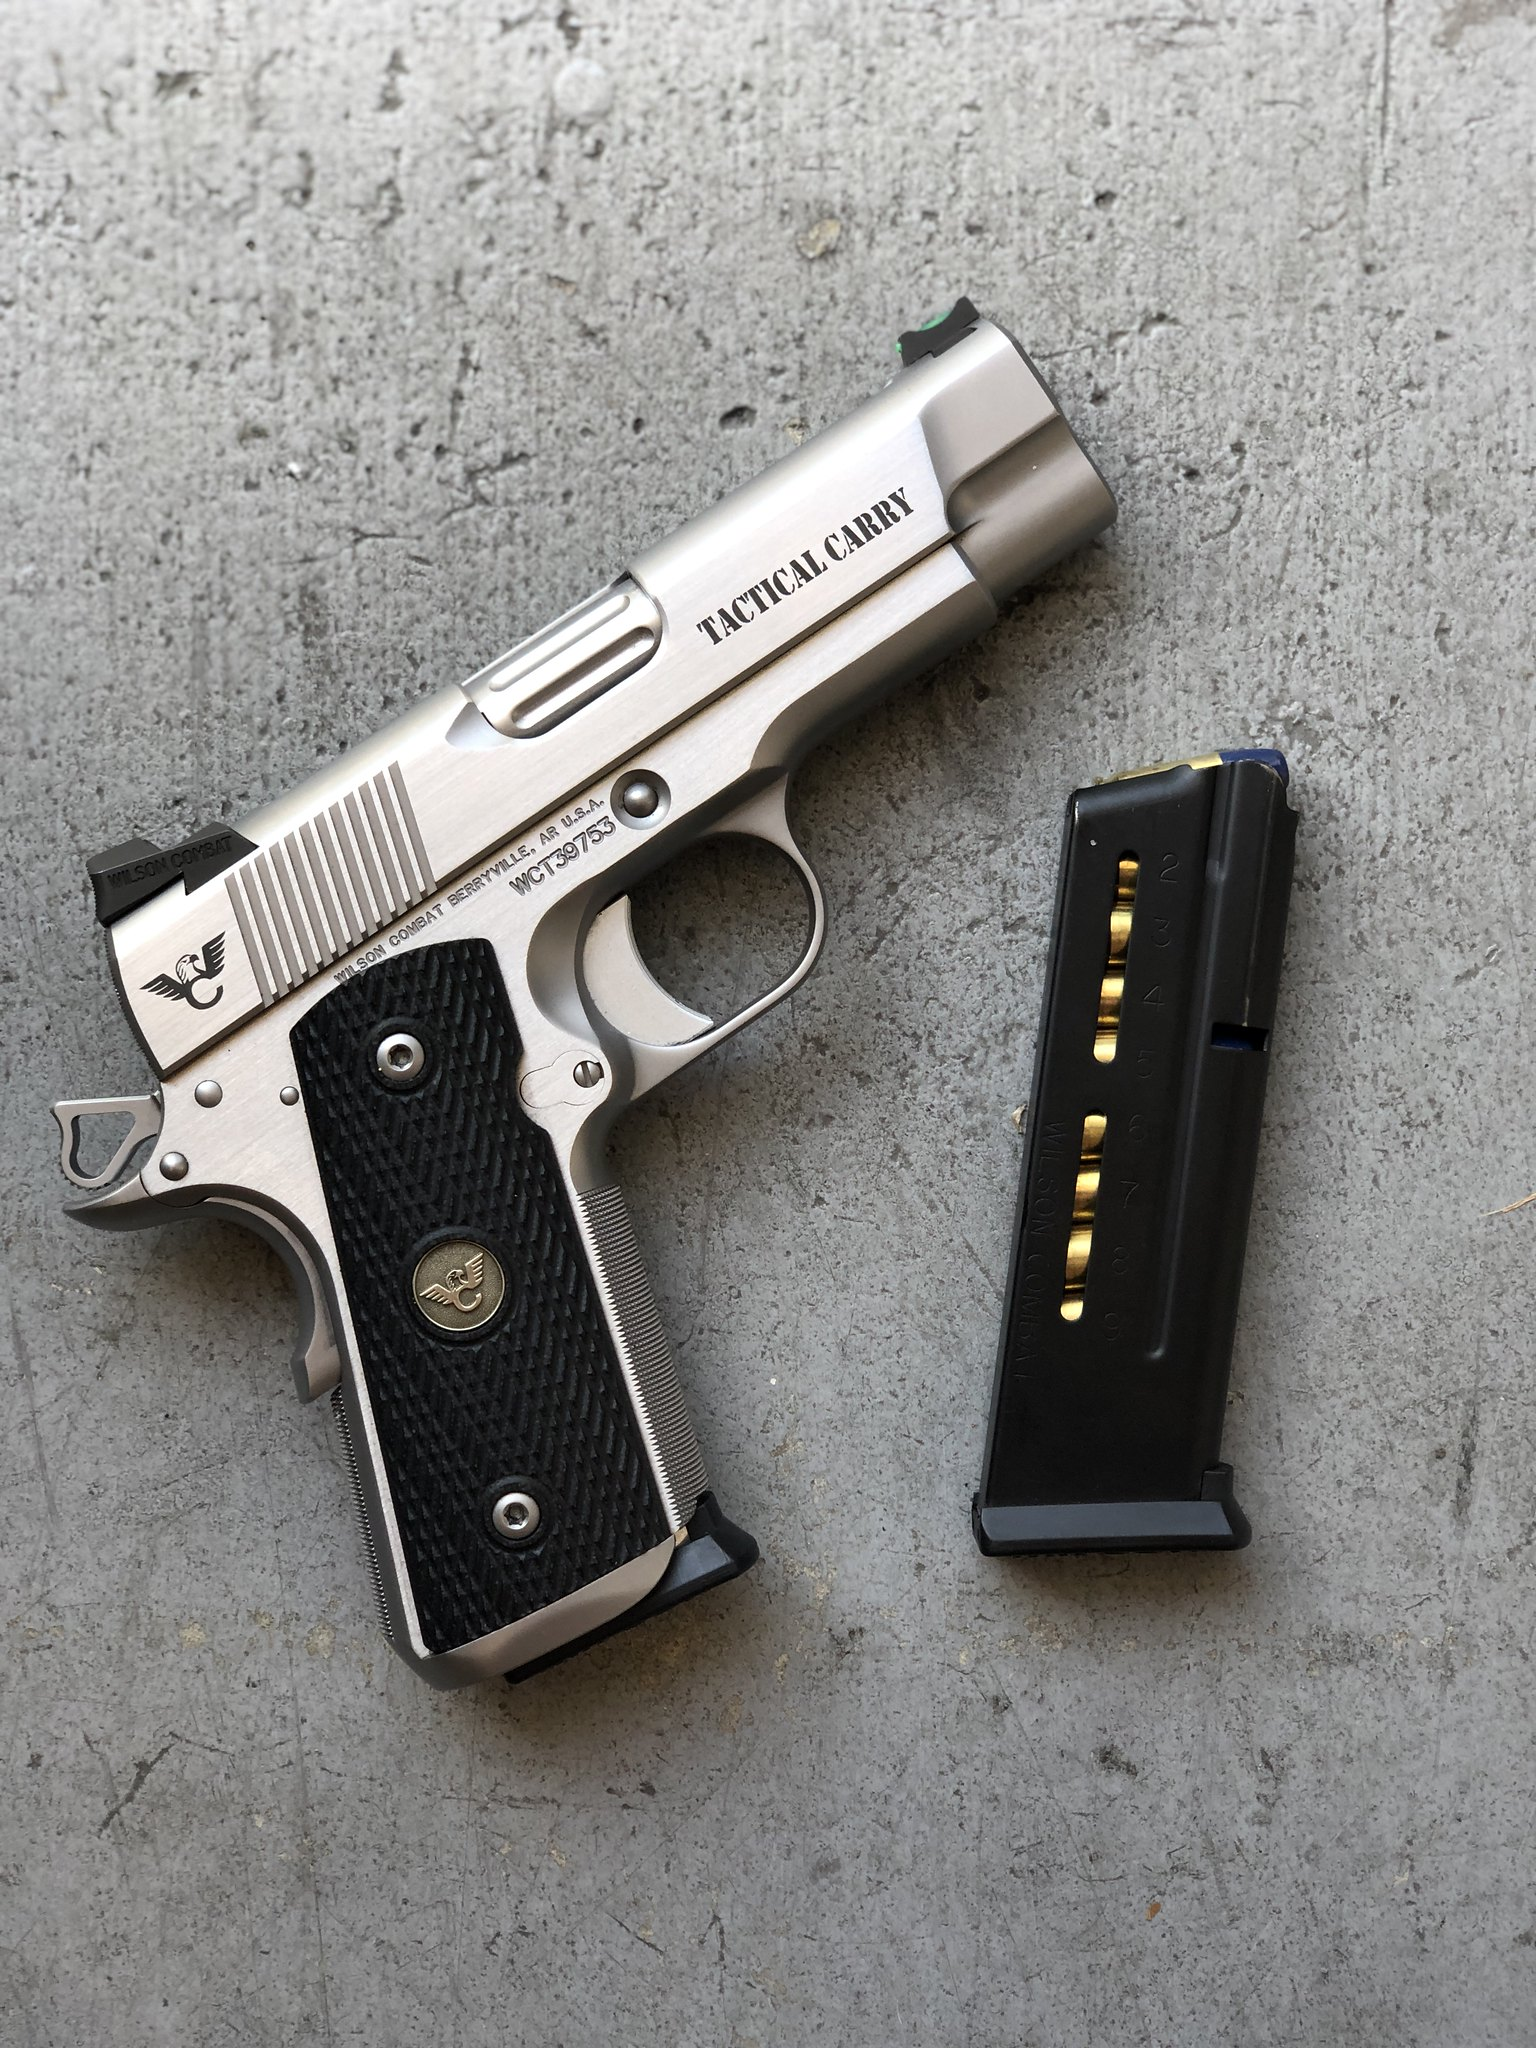 Stainless 9mm compact